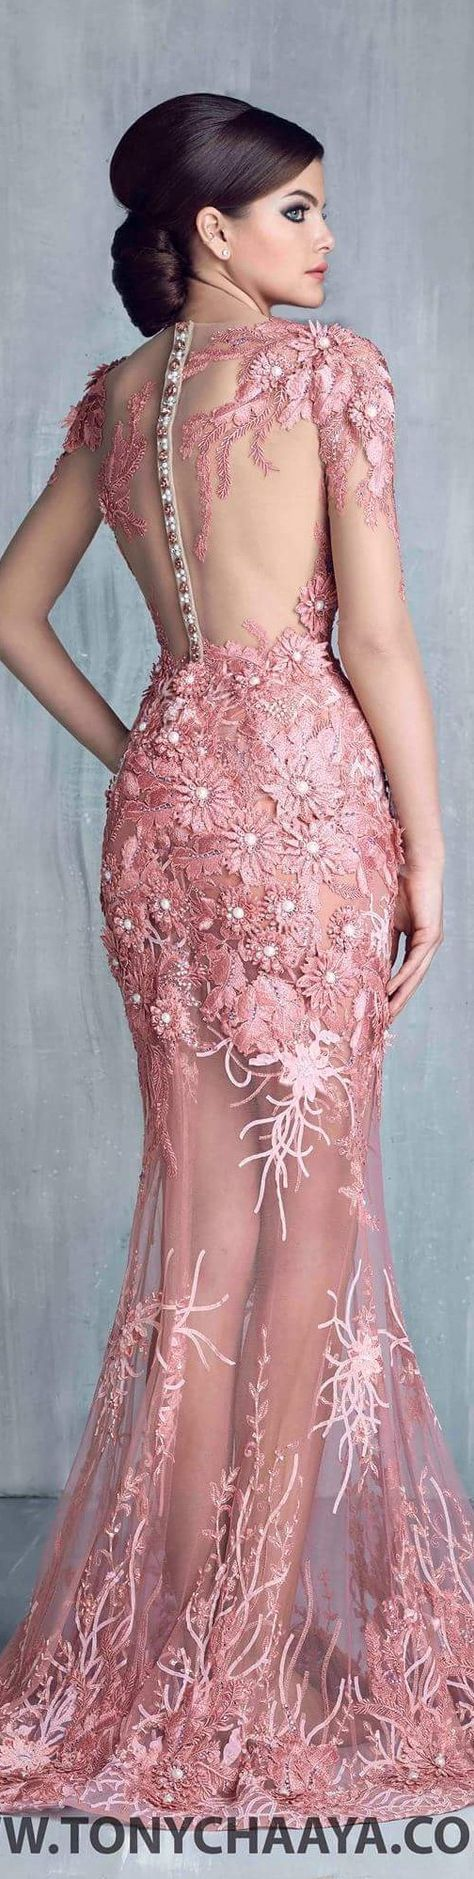 48 best the best images on Pinterest | Evening gowns, Curve dresses ...